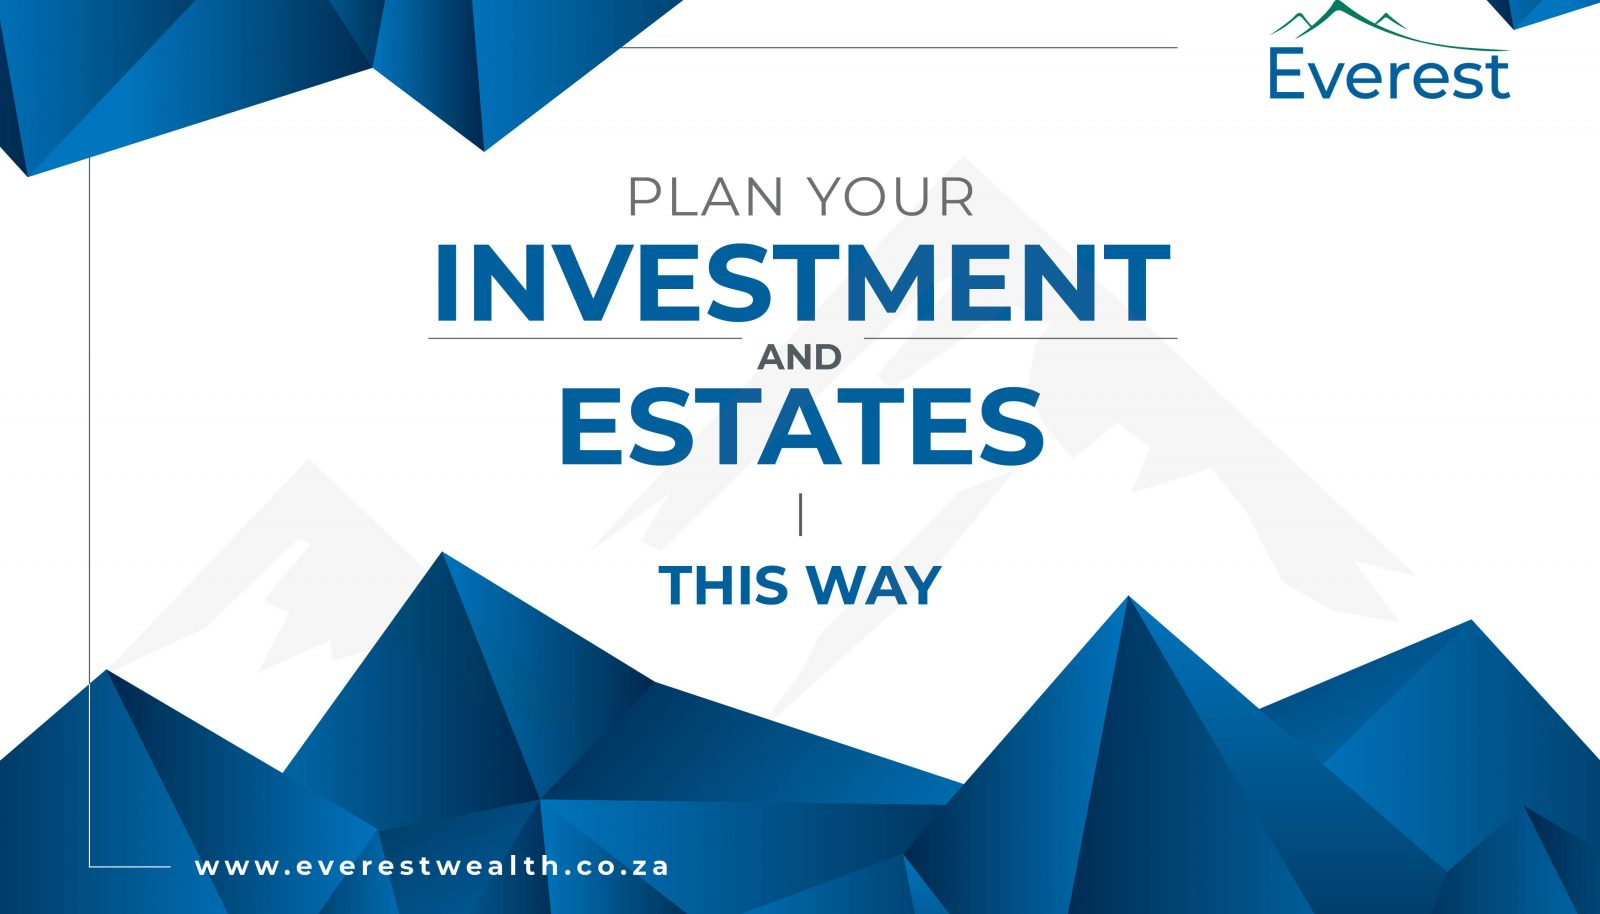 Plan your investments and estates this way